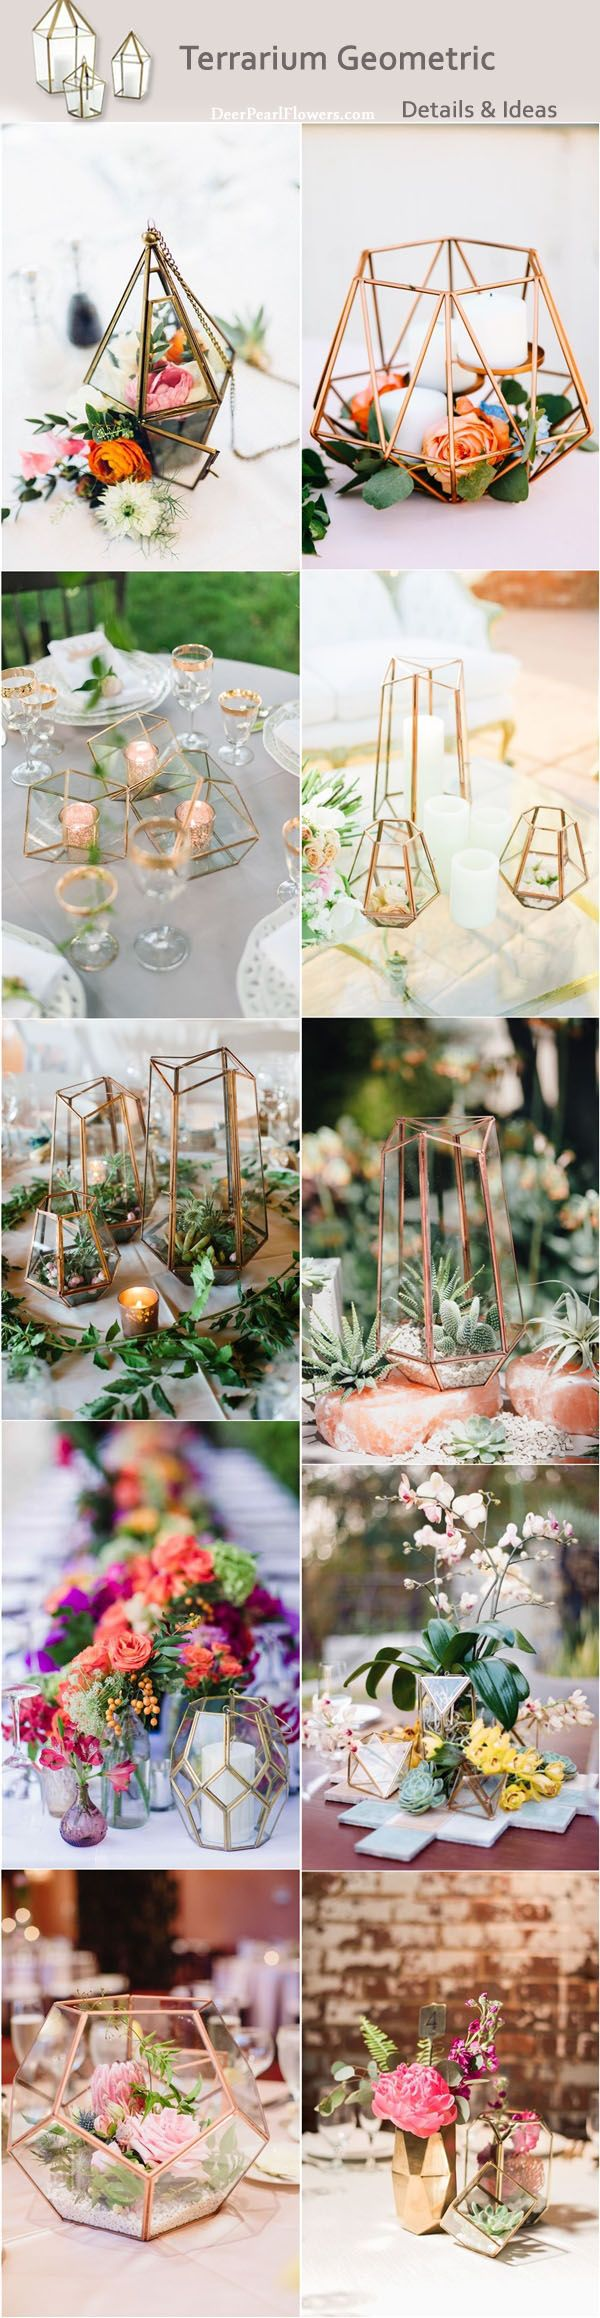 Modern wedding ideas - Terrarium geometric wedding centerpieces / http://www.deerpearlflowers.com/terrarium-geometric-details-ideas/